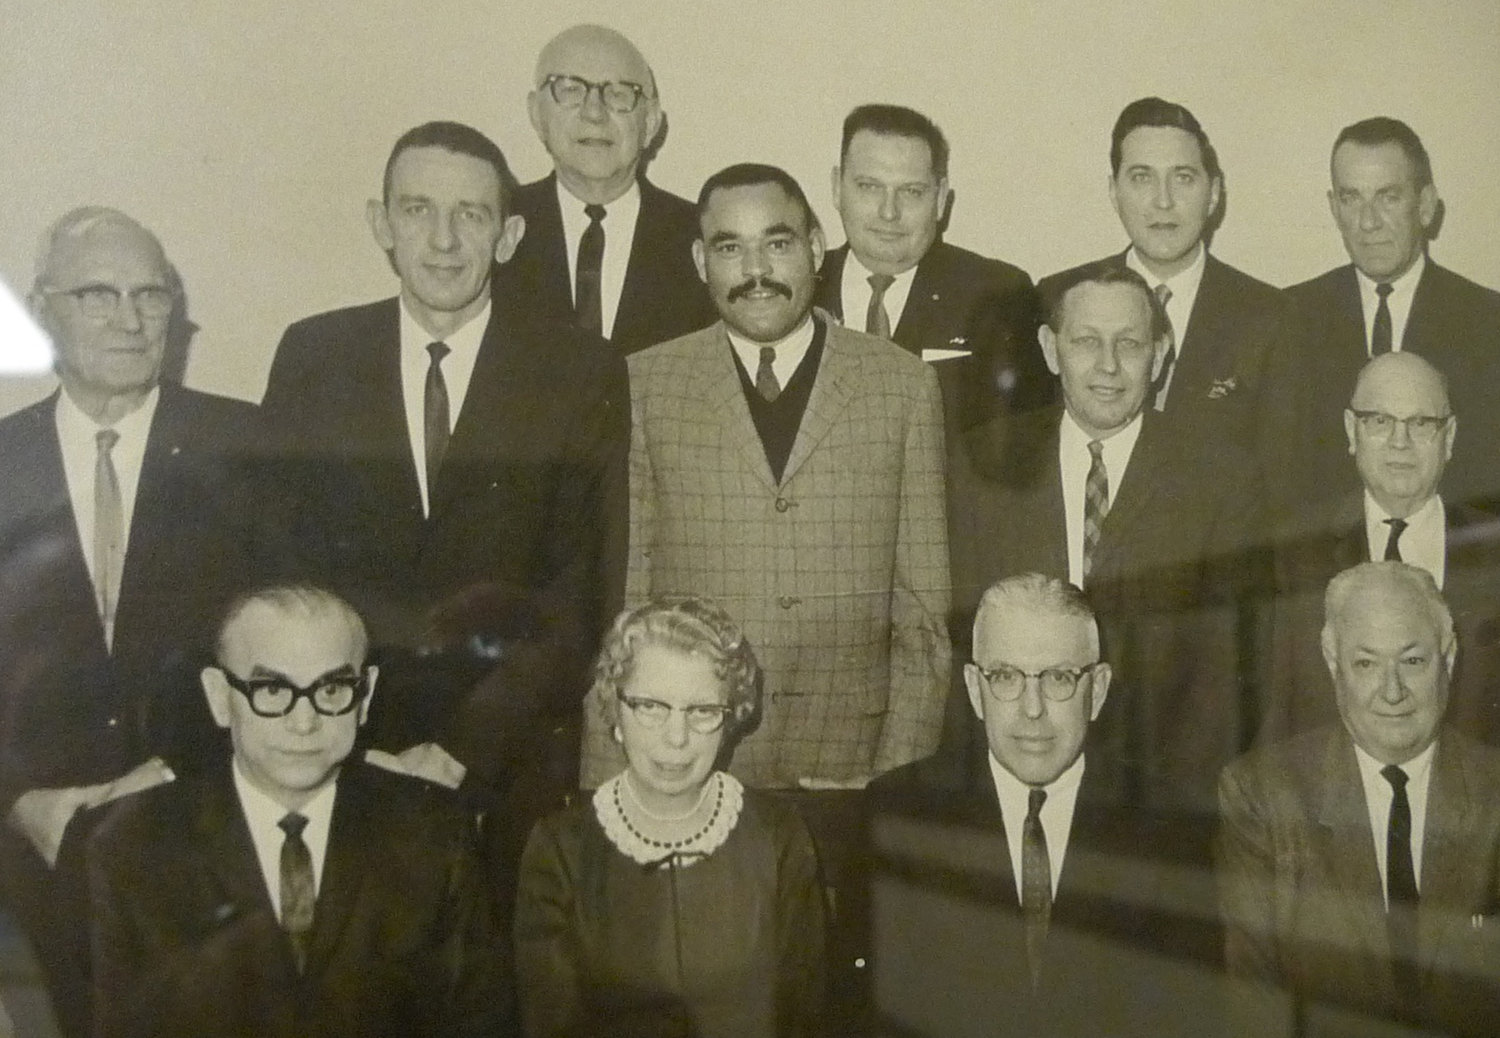 This photo hanging on the wall in Council Chambers shows Edward Willenbecher as a member of Middletown Borough Council in 1968. He is the second person in from the left in the second row. Right of Willenbecher is present-day Councilor Robert Reid, who began his first term as a Middletown elected official on the council in 1968.